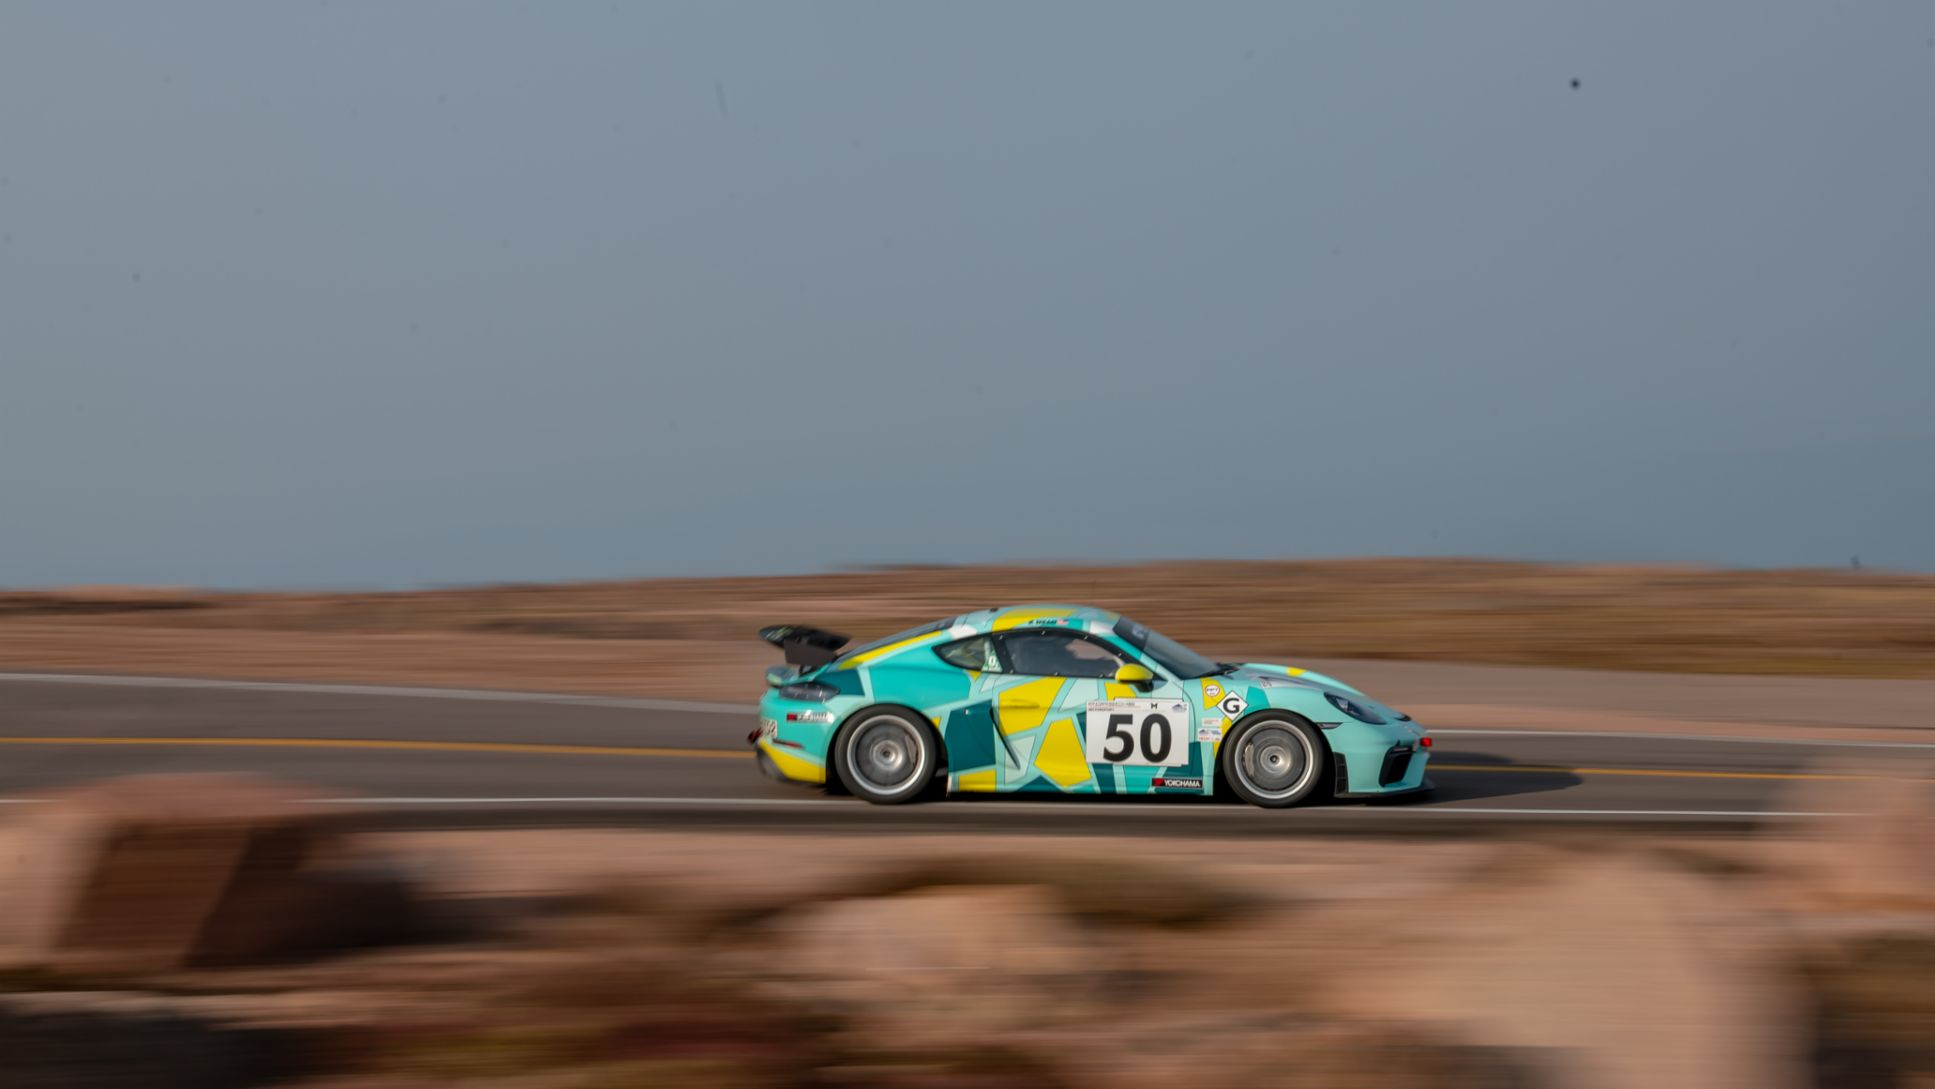 2020 - Pikes Peak - Tuesday - Aug 25 - No. 50 Porsche Cayman GT4 Clubsport - Kathryn Mead - by Marc Urbano